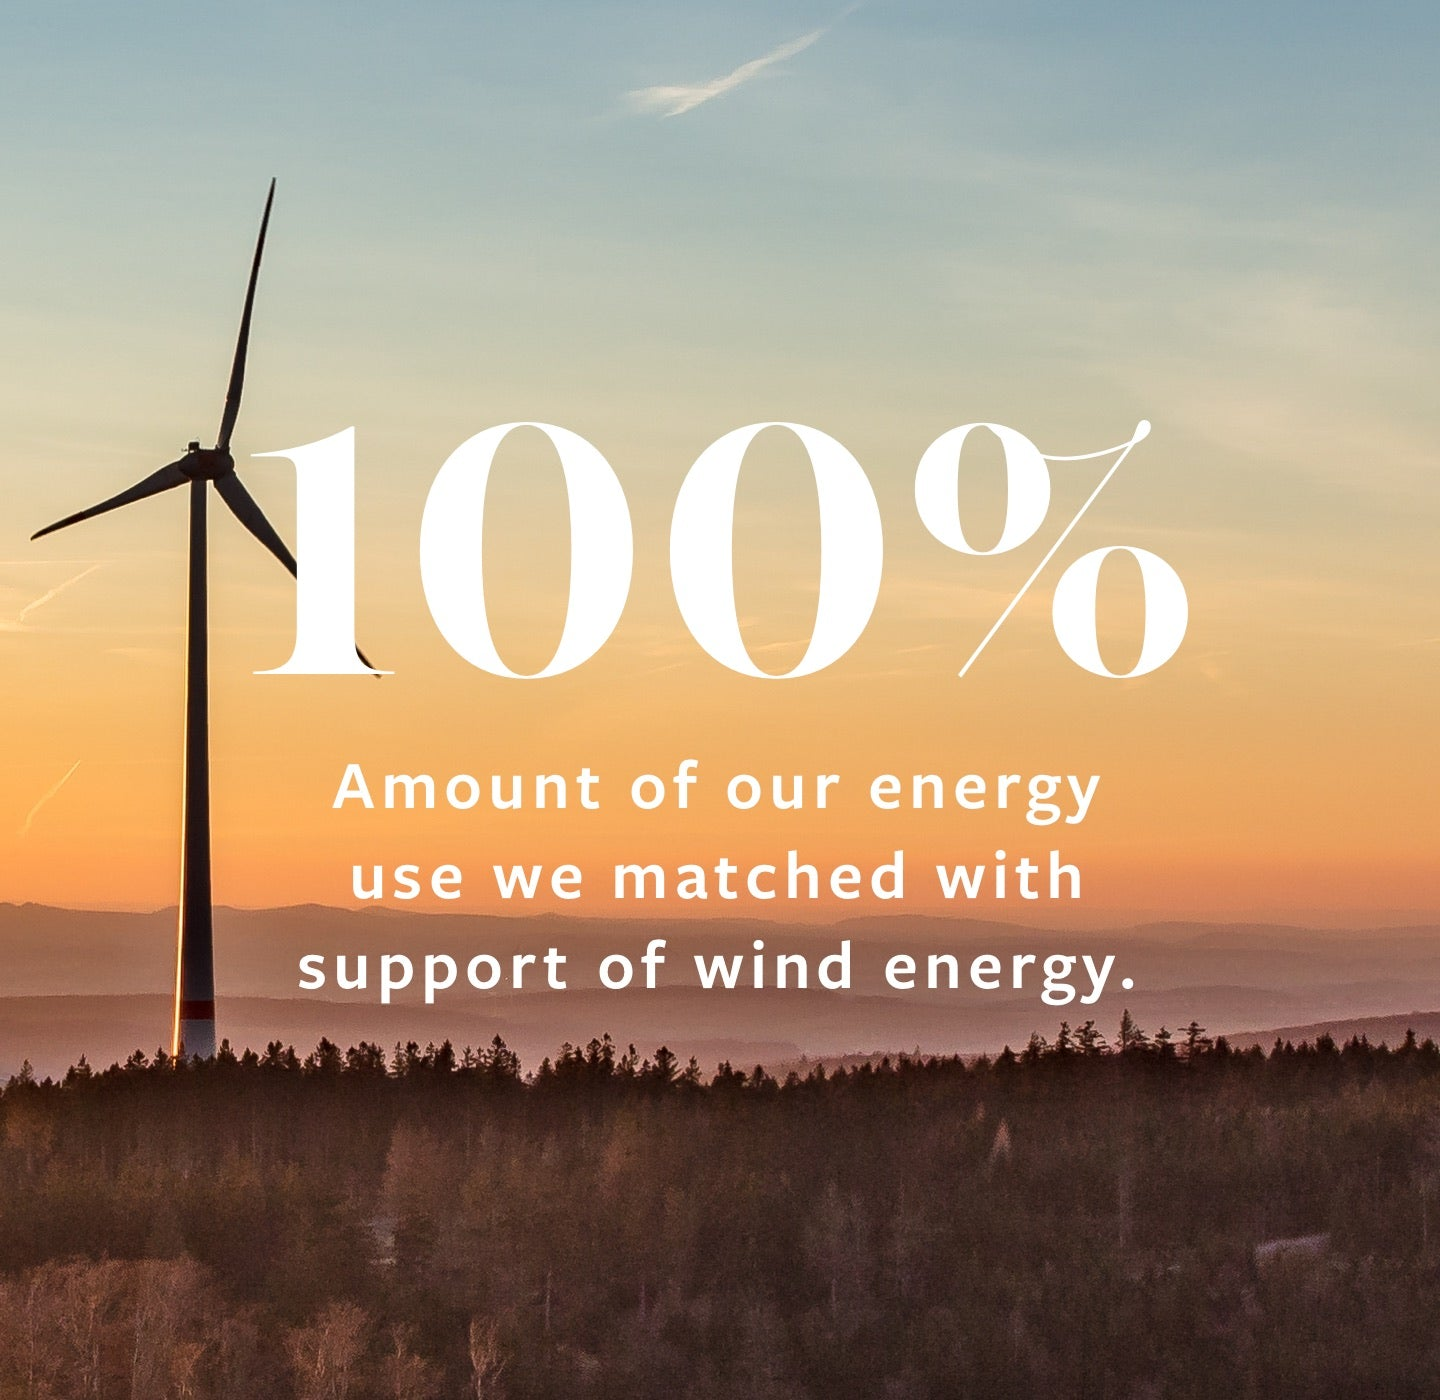 100 Percent of Energy Matched With Wind Energy